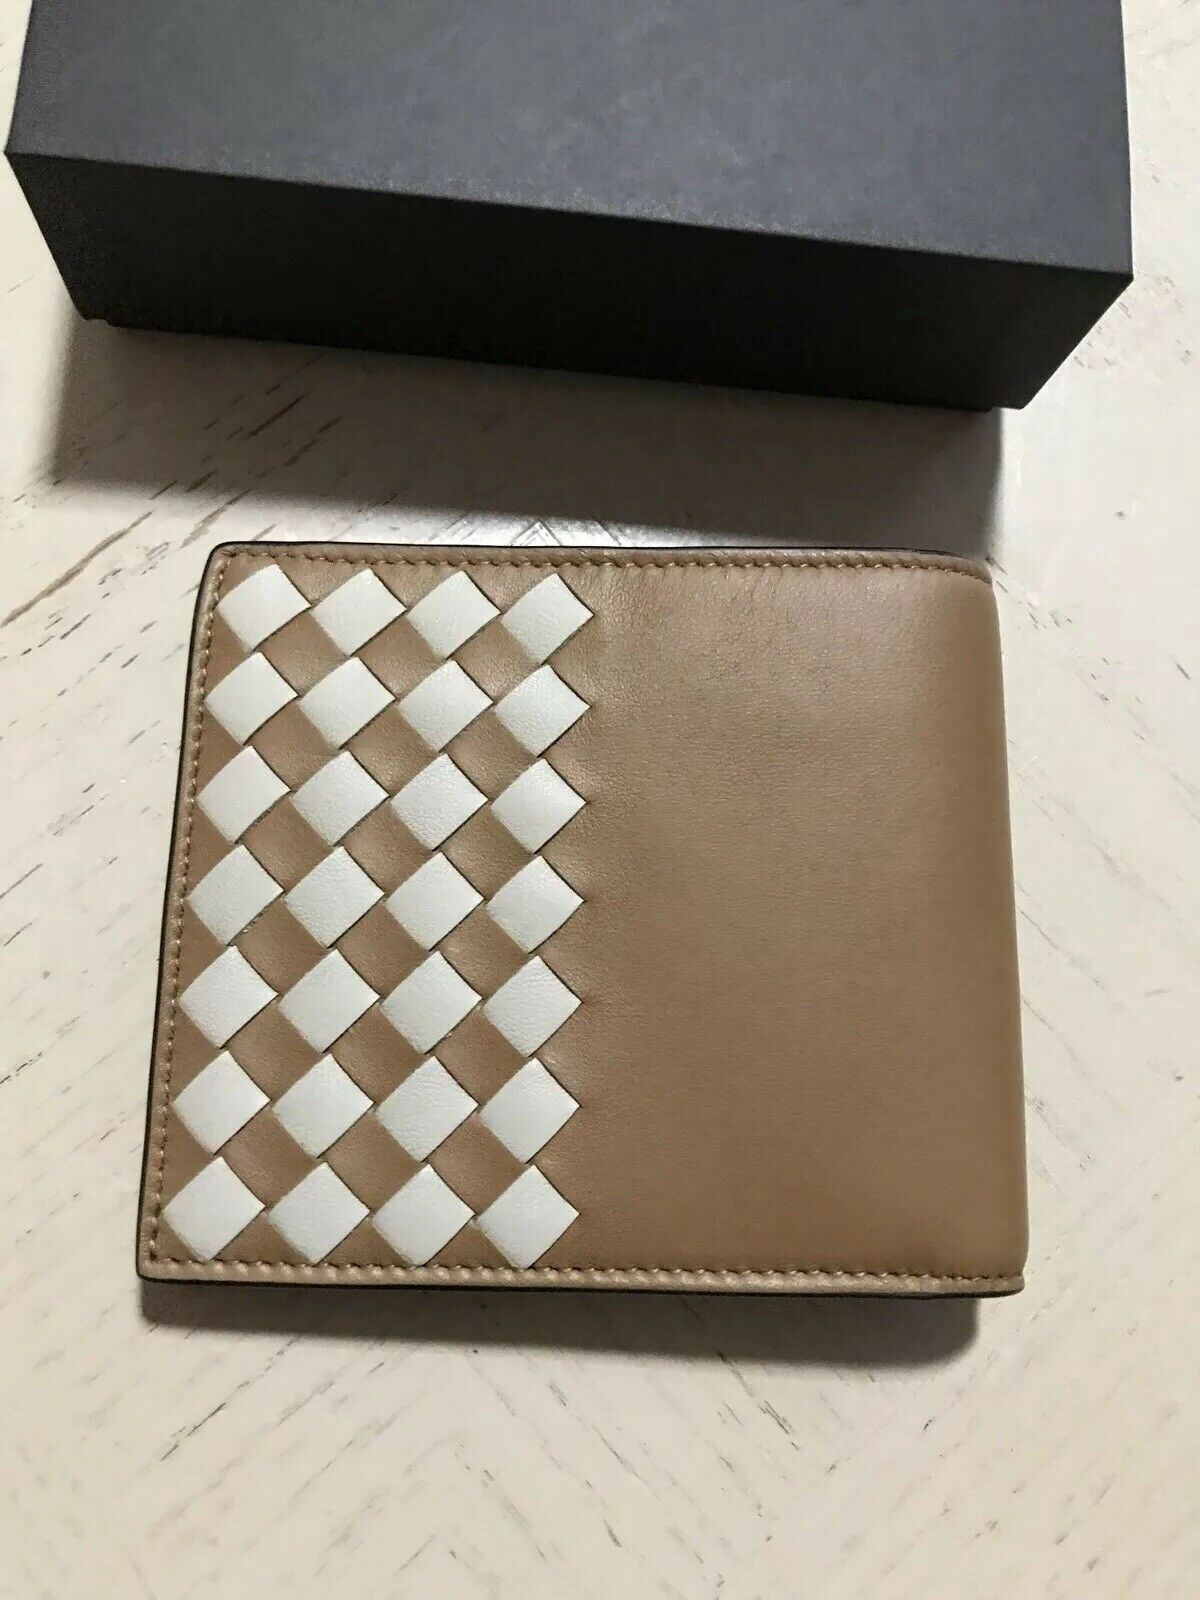 New Bottega Veneta Mens Wallet Camel/Cream  113993 Italy